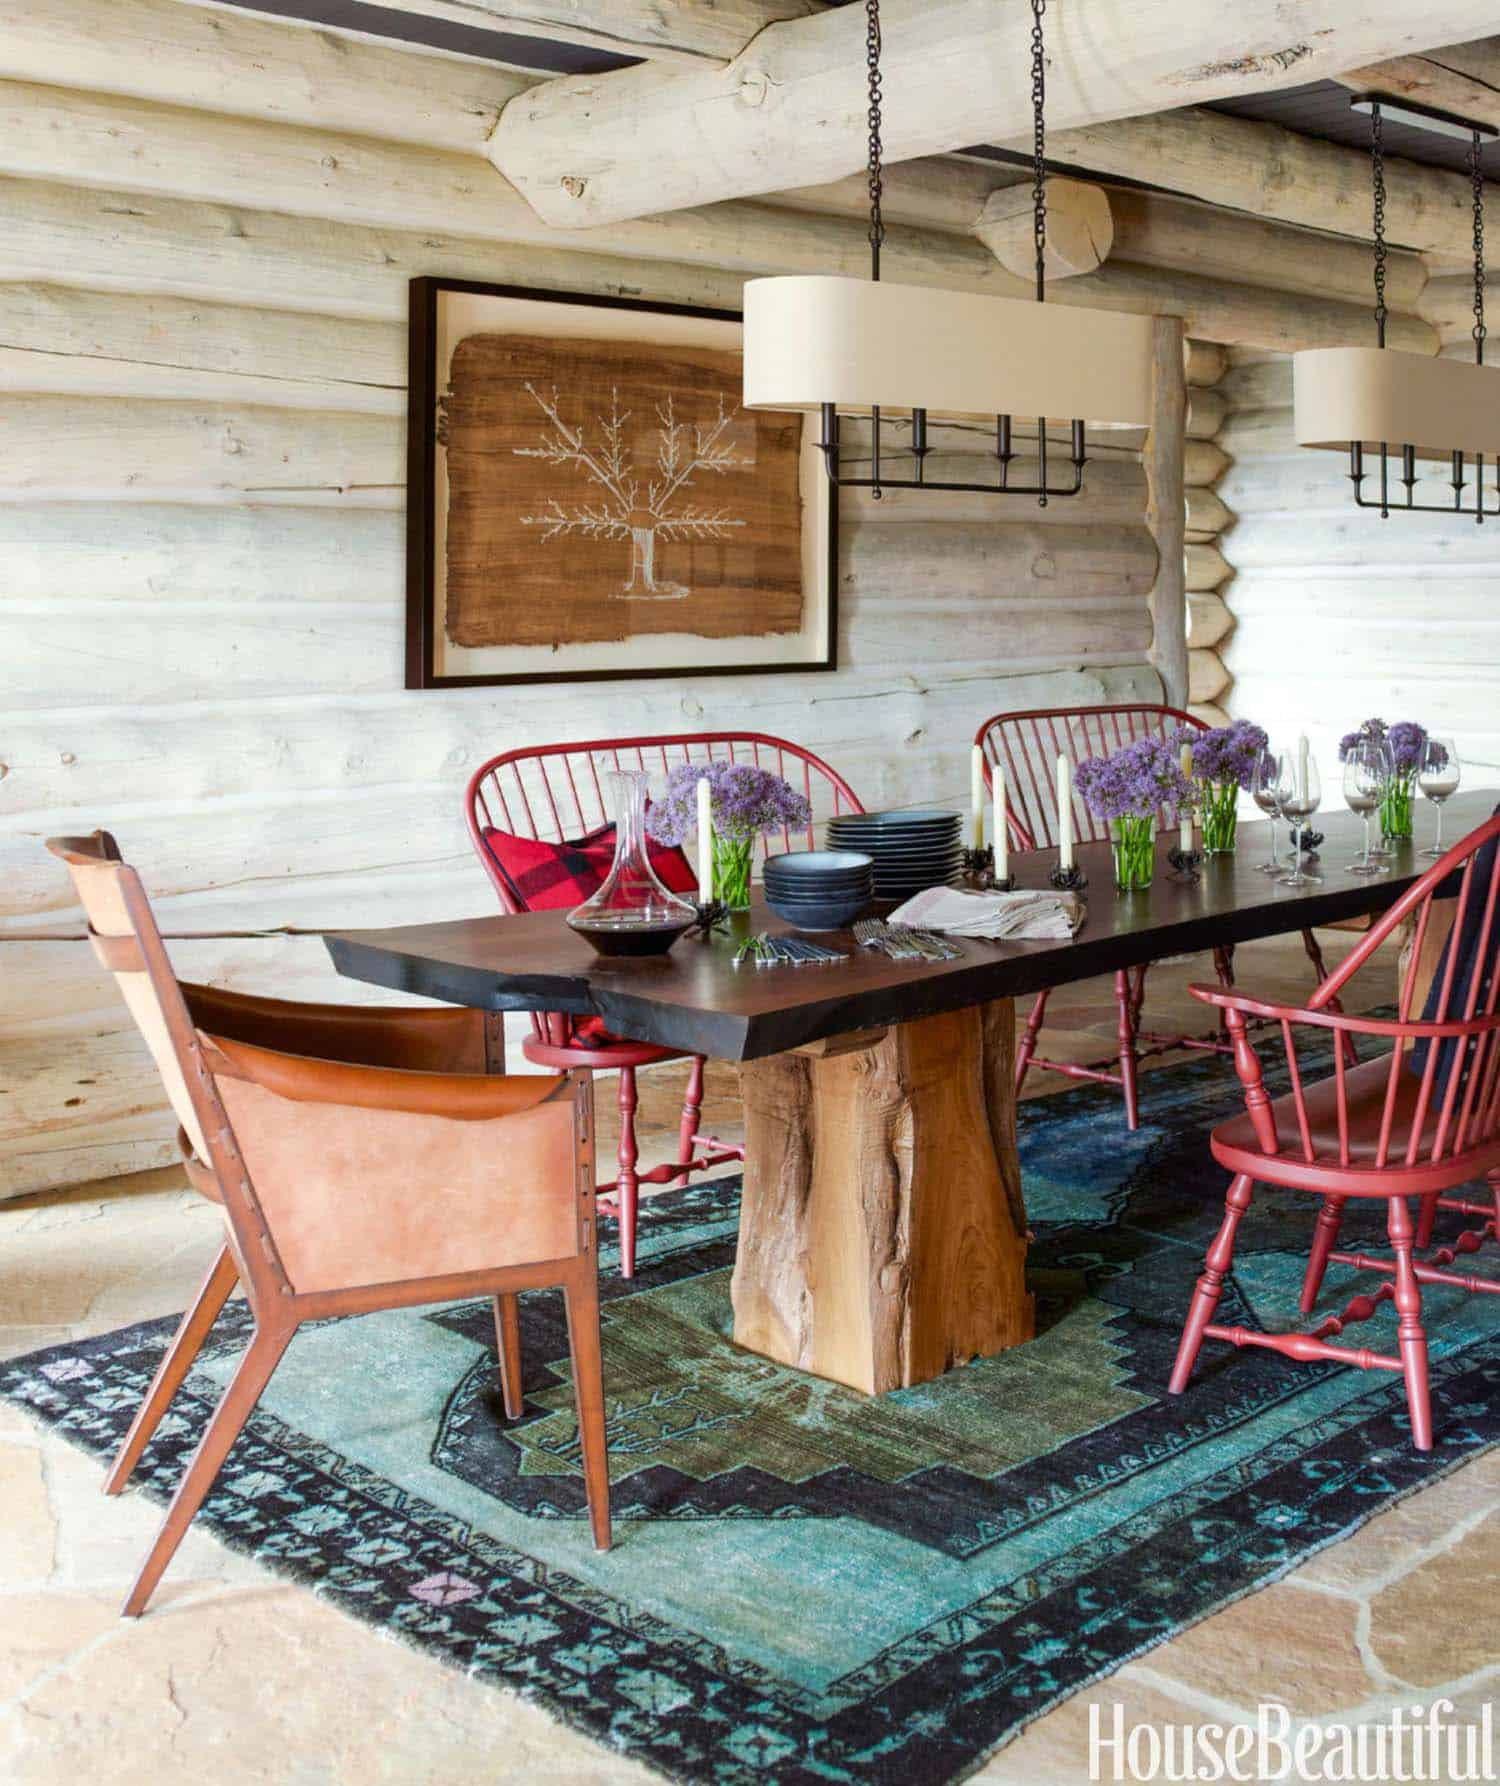 Rustic Log Cabin-Thom Filicia-07-1 Kindesign